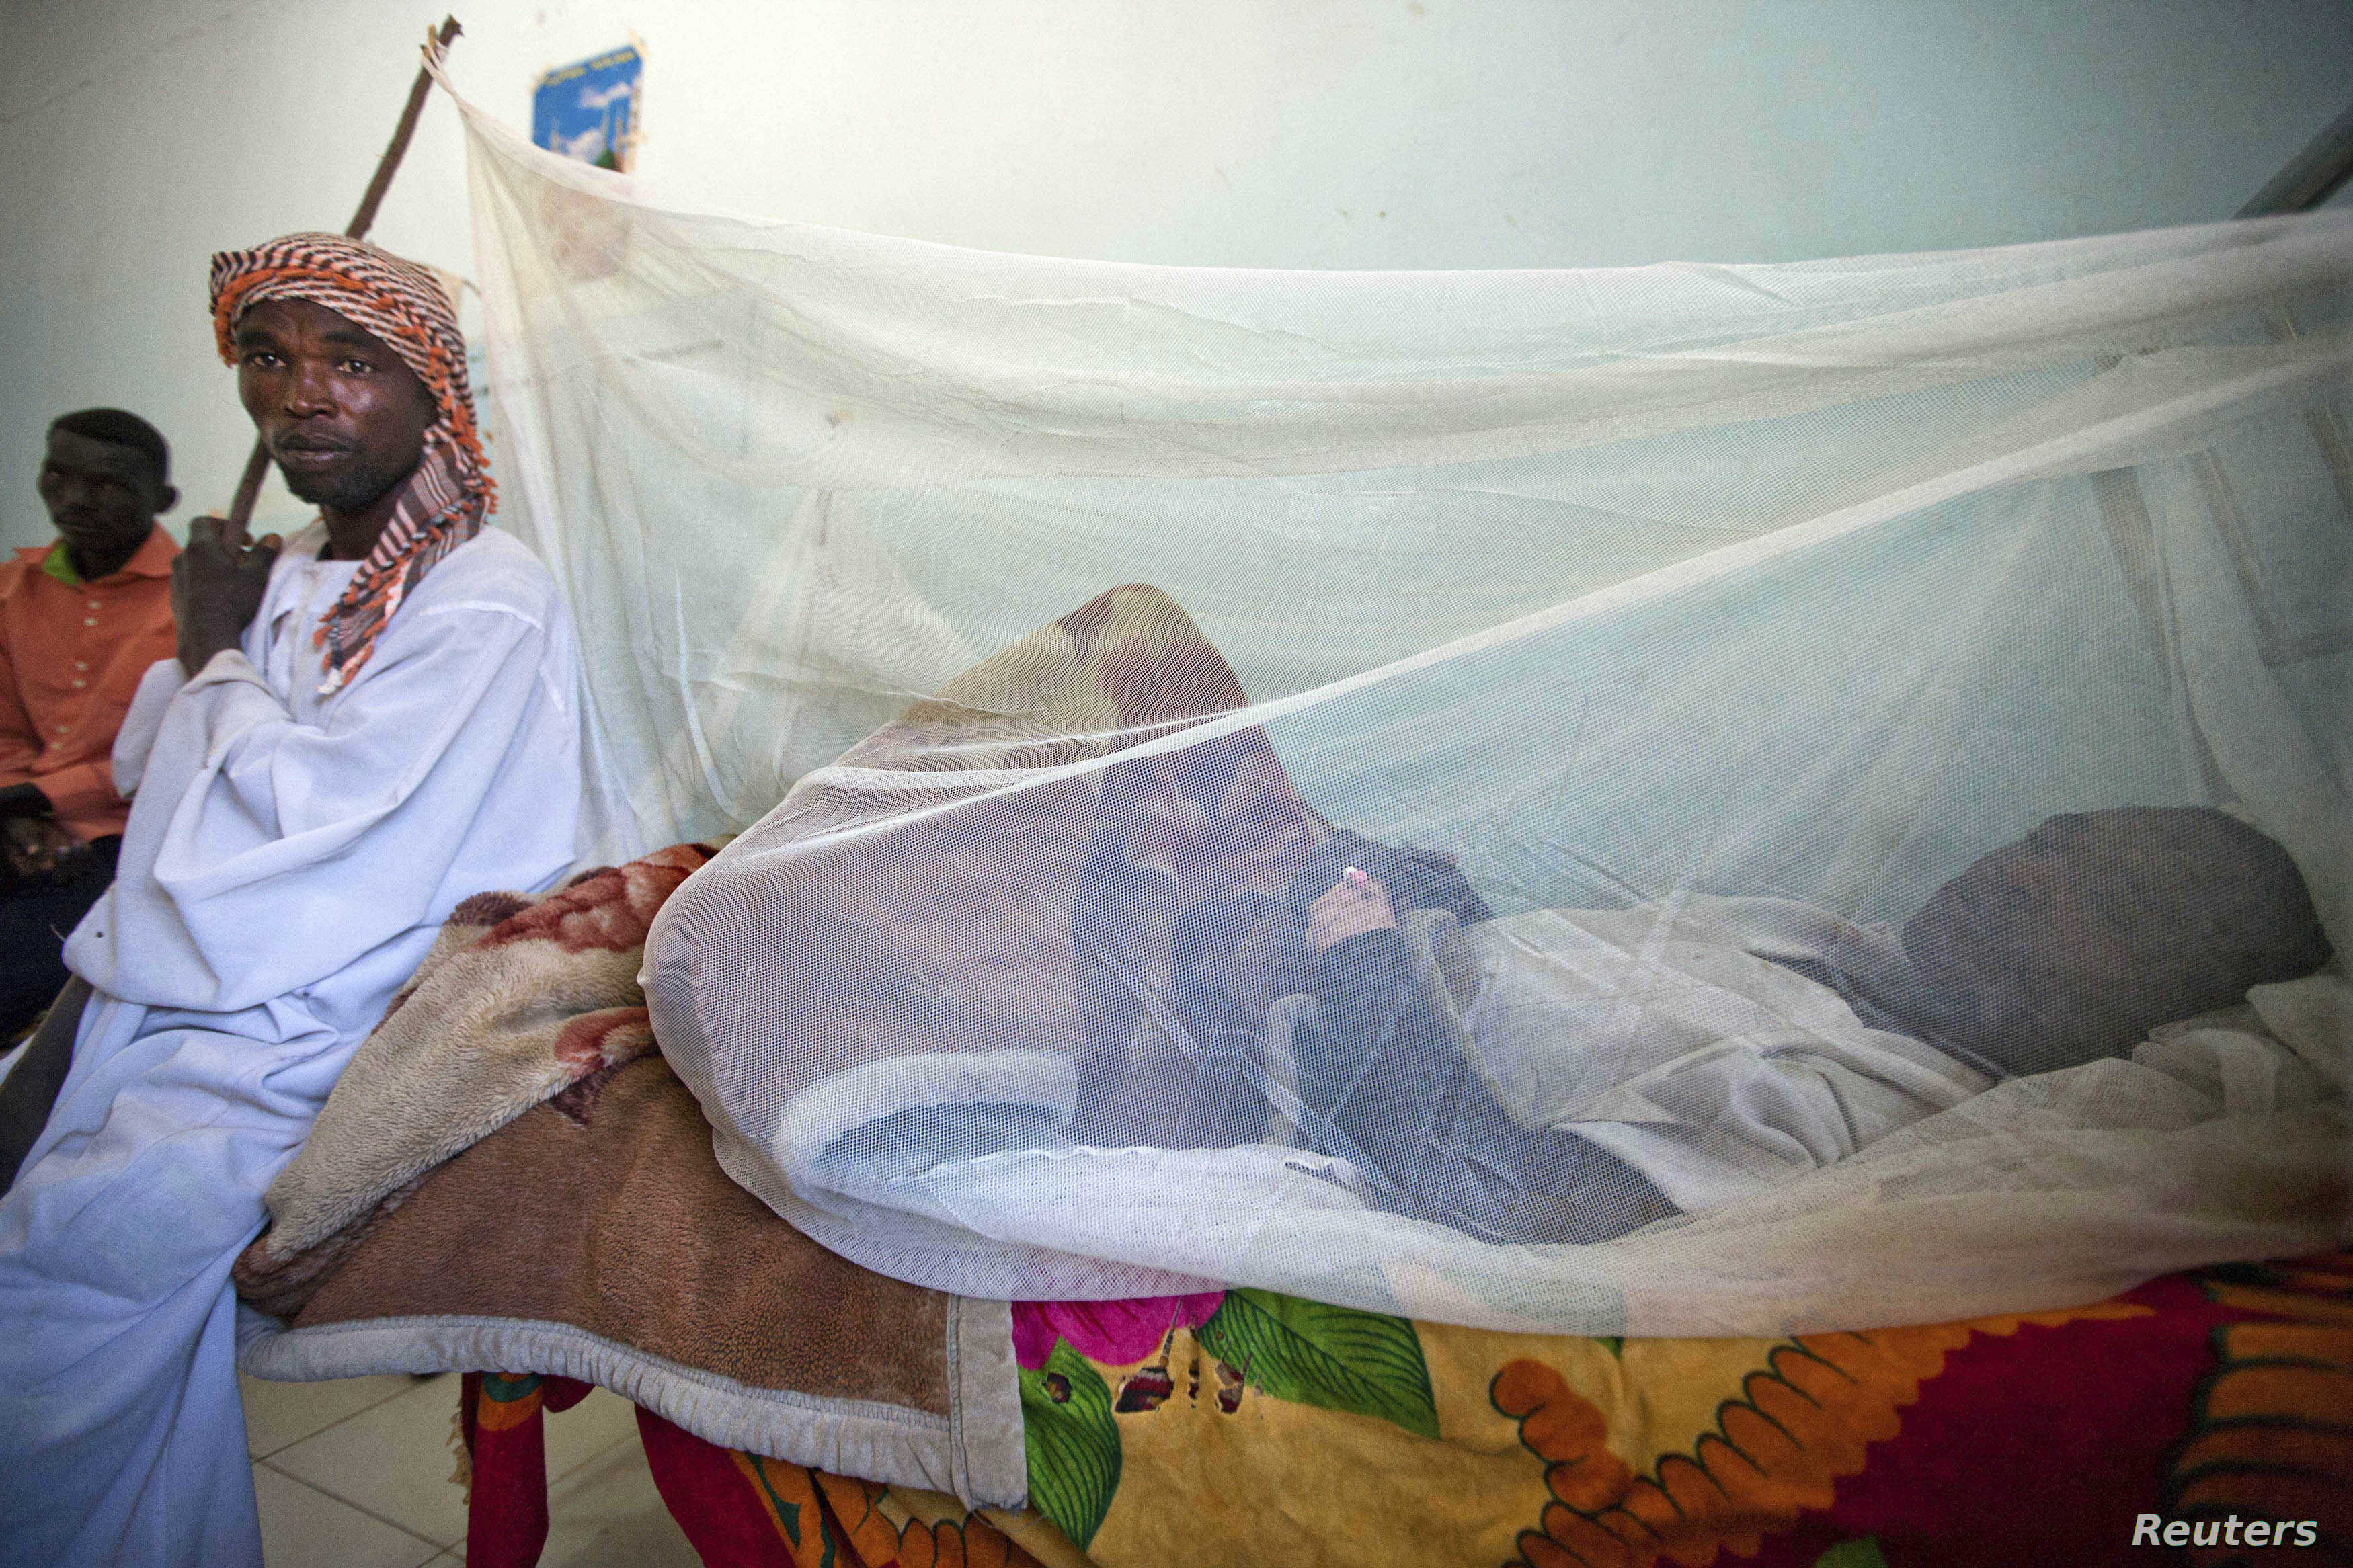 FILE - Adam Abdalah (L), a farmer from West Darfur's Adar, accompanies his son Yassim Adam who is being treated for yellow fever at the Teaching Hospital in El Geneina in this Nov. 14, 2012 handout.